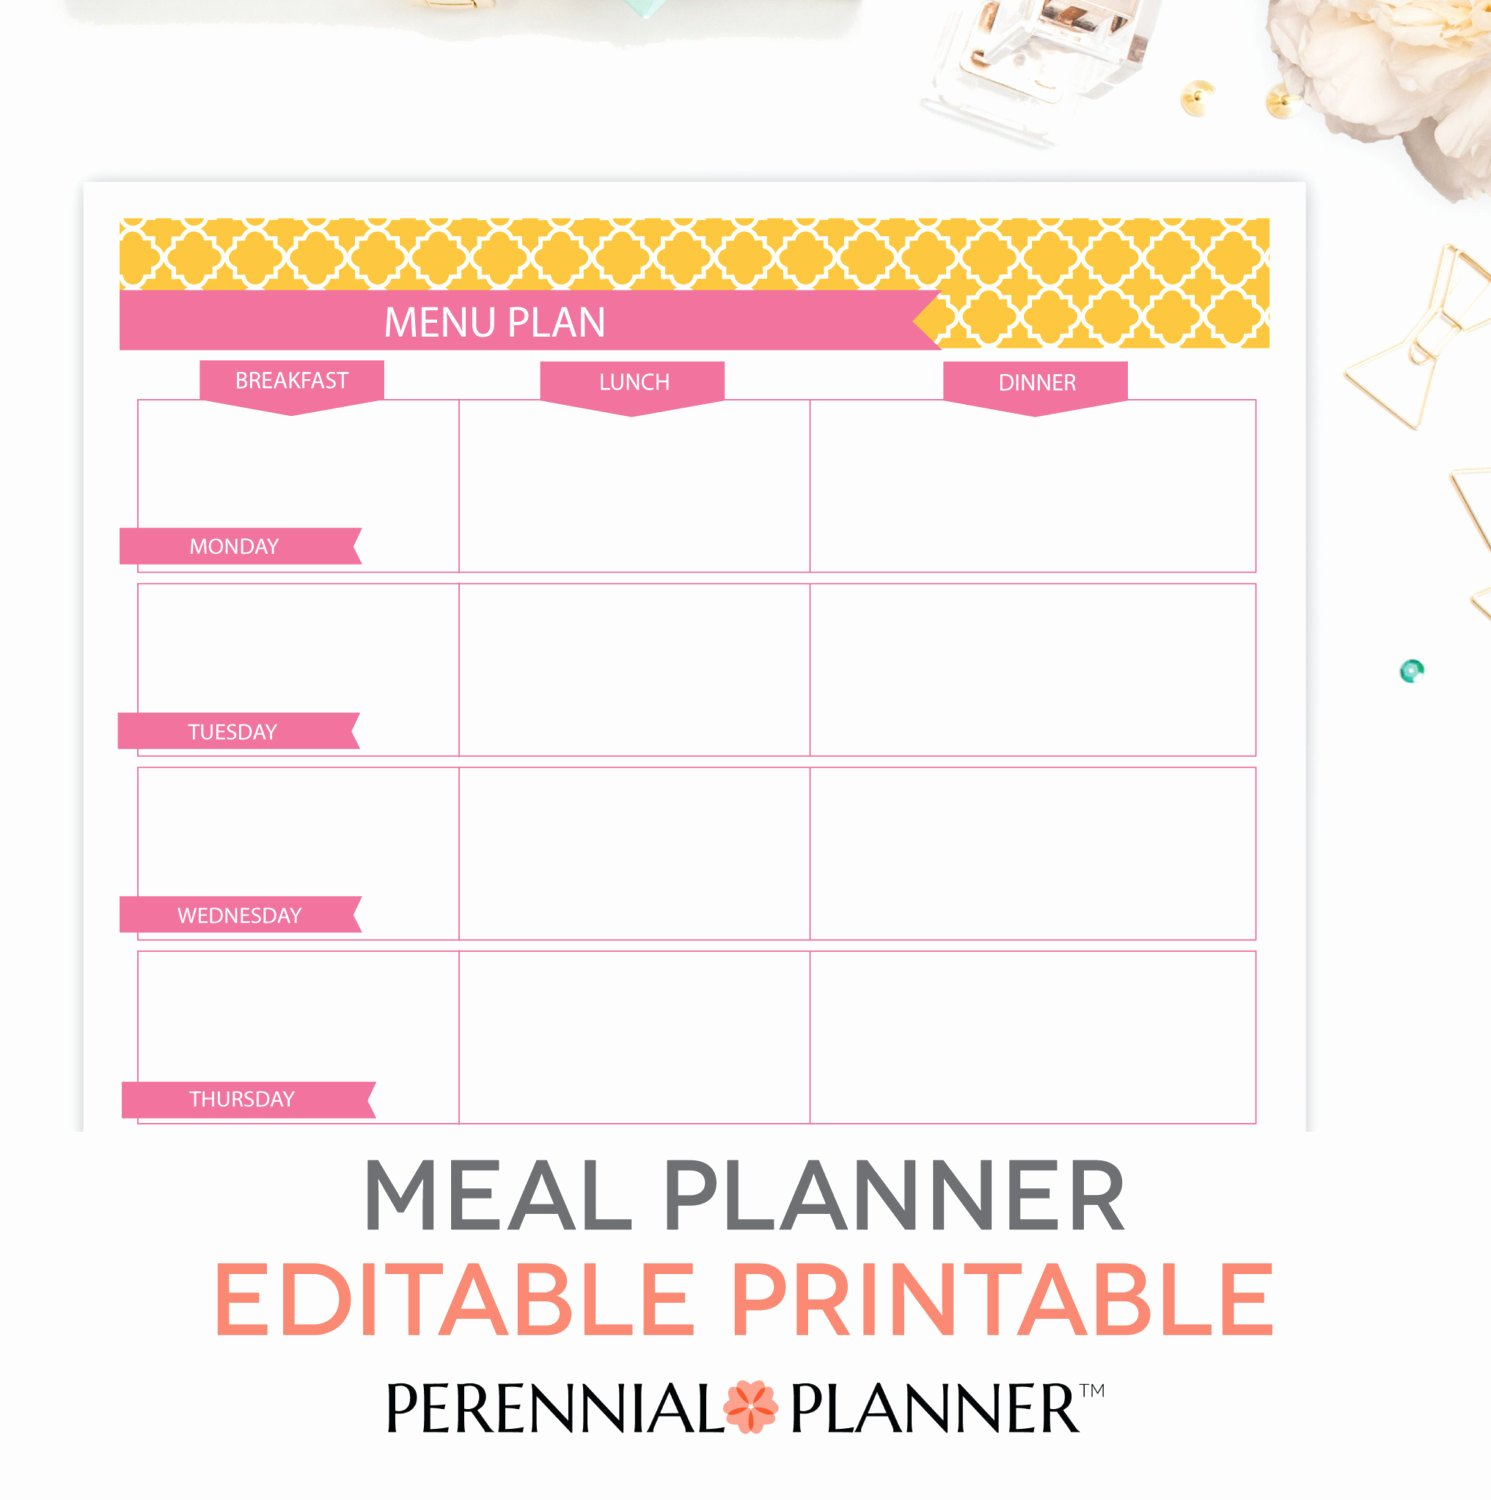 Free Menu Plan Template New Menu Plan Weekly Meal Planning Template Printable Editable